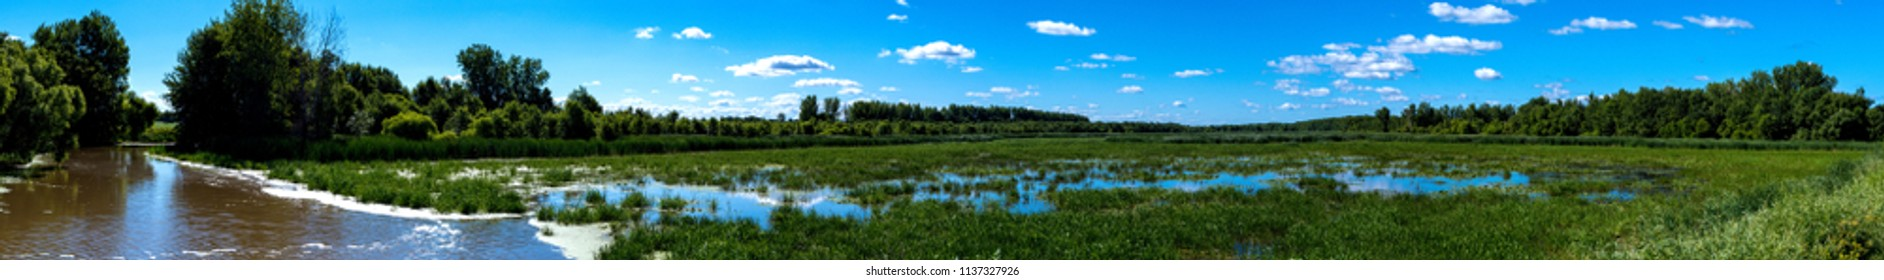 Panoramic view of a river and marsh in summer